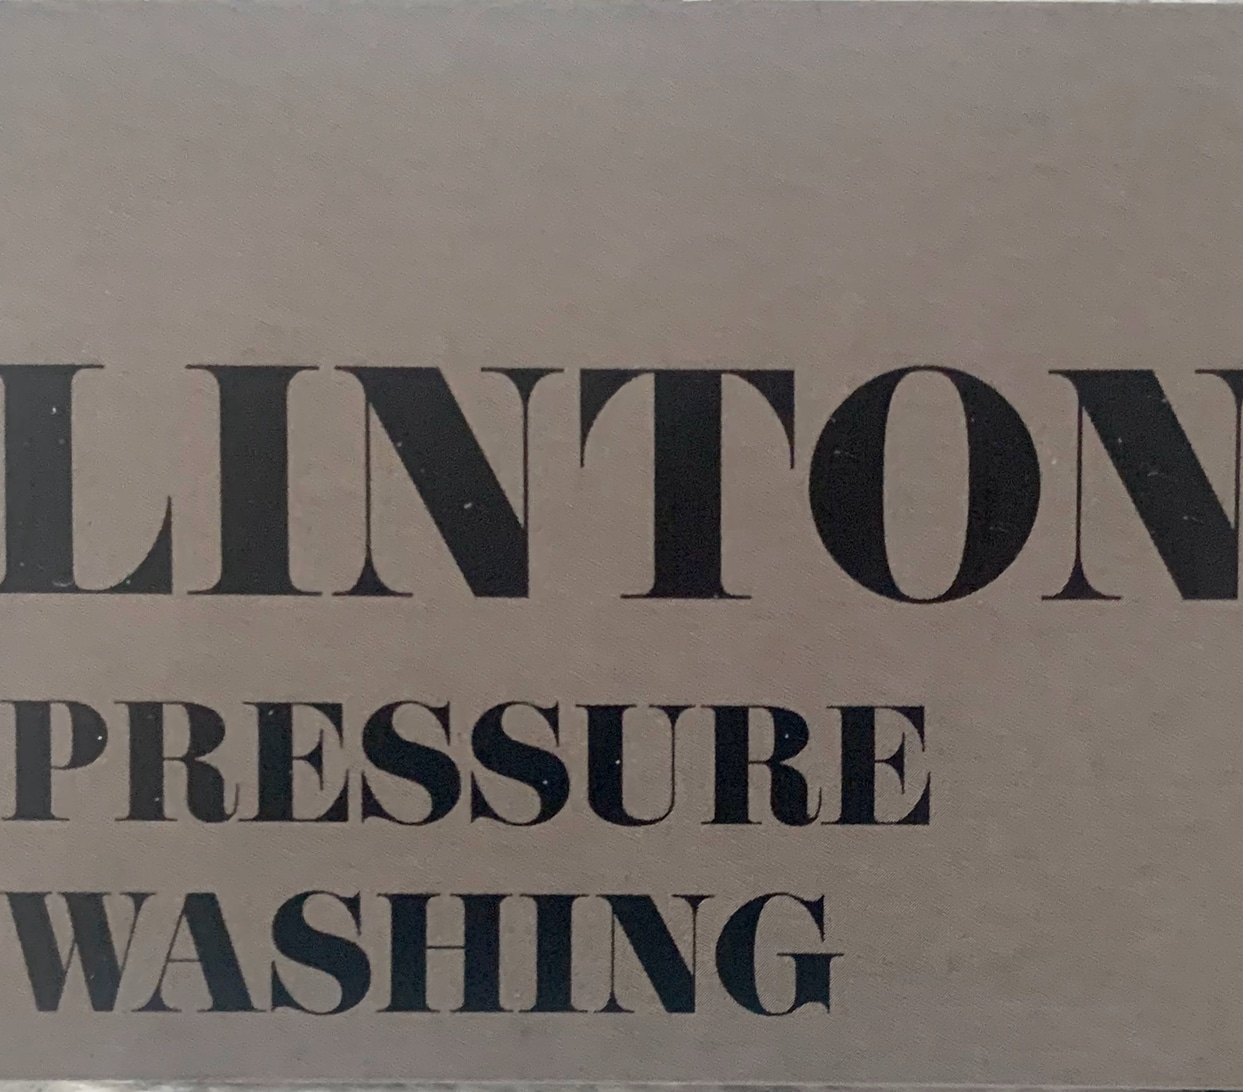 Linton Pressure Washing And Landscaping